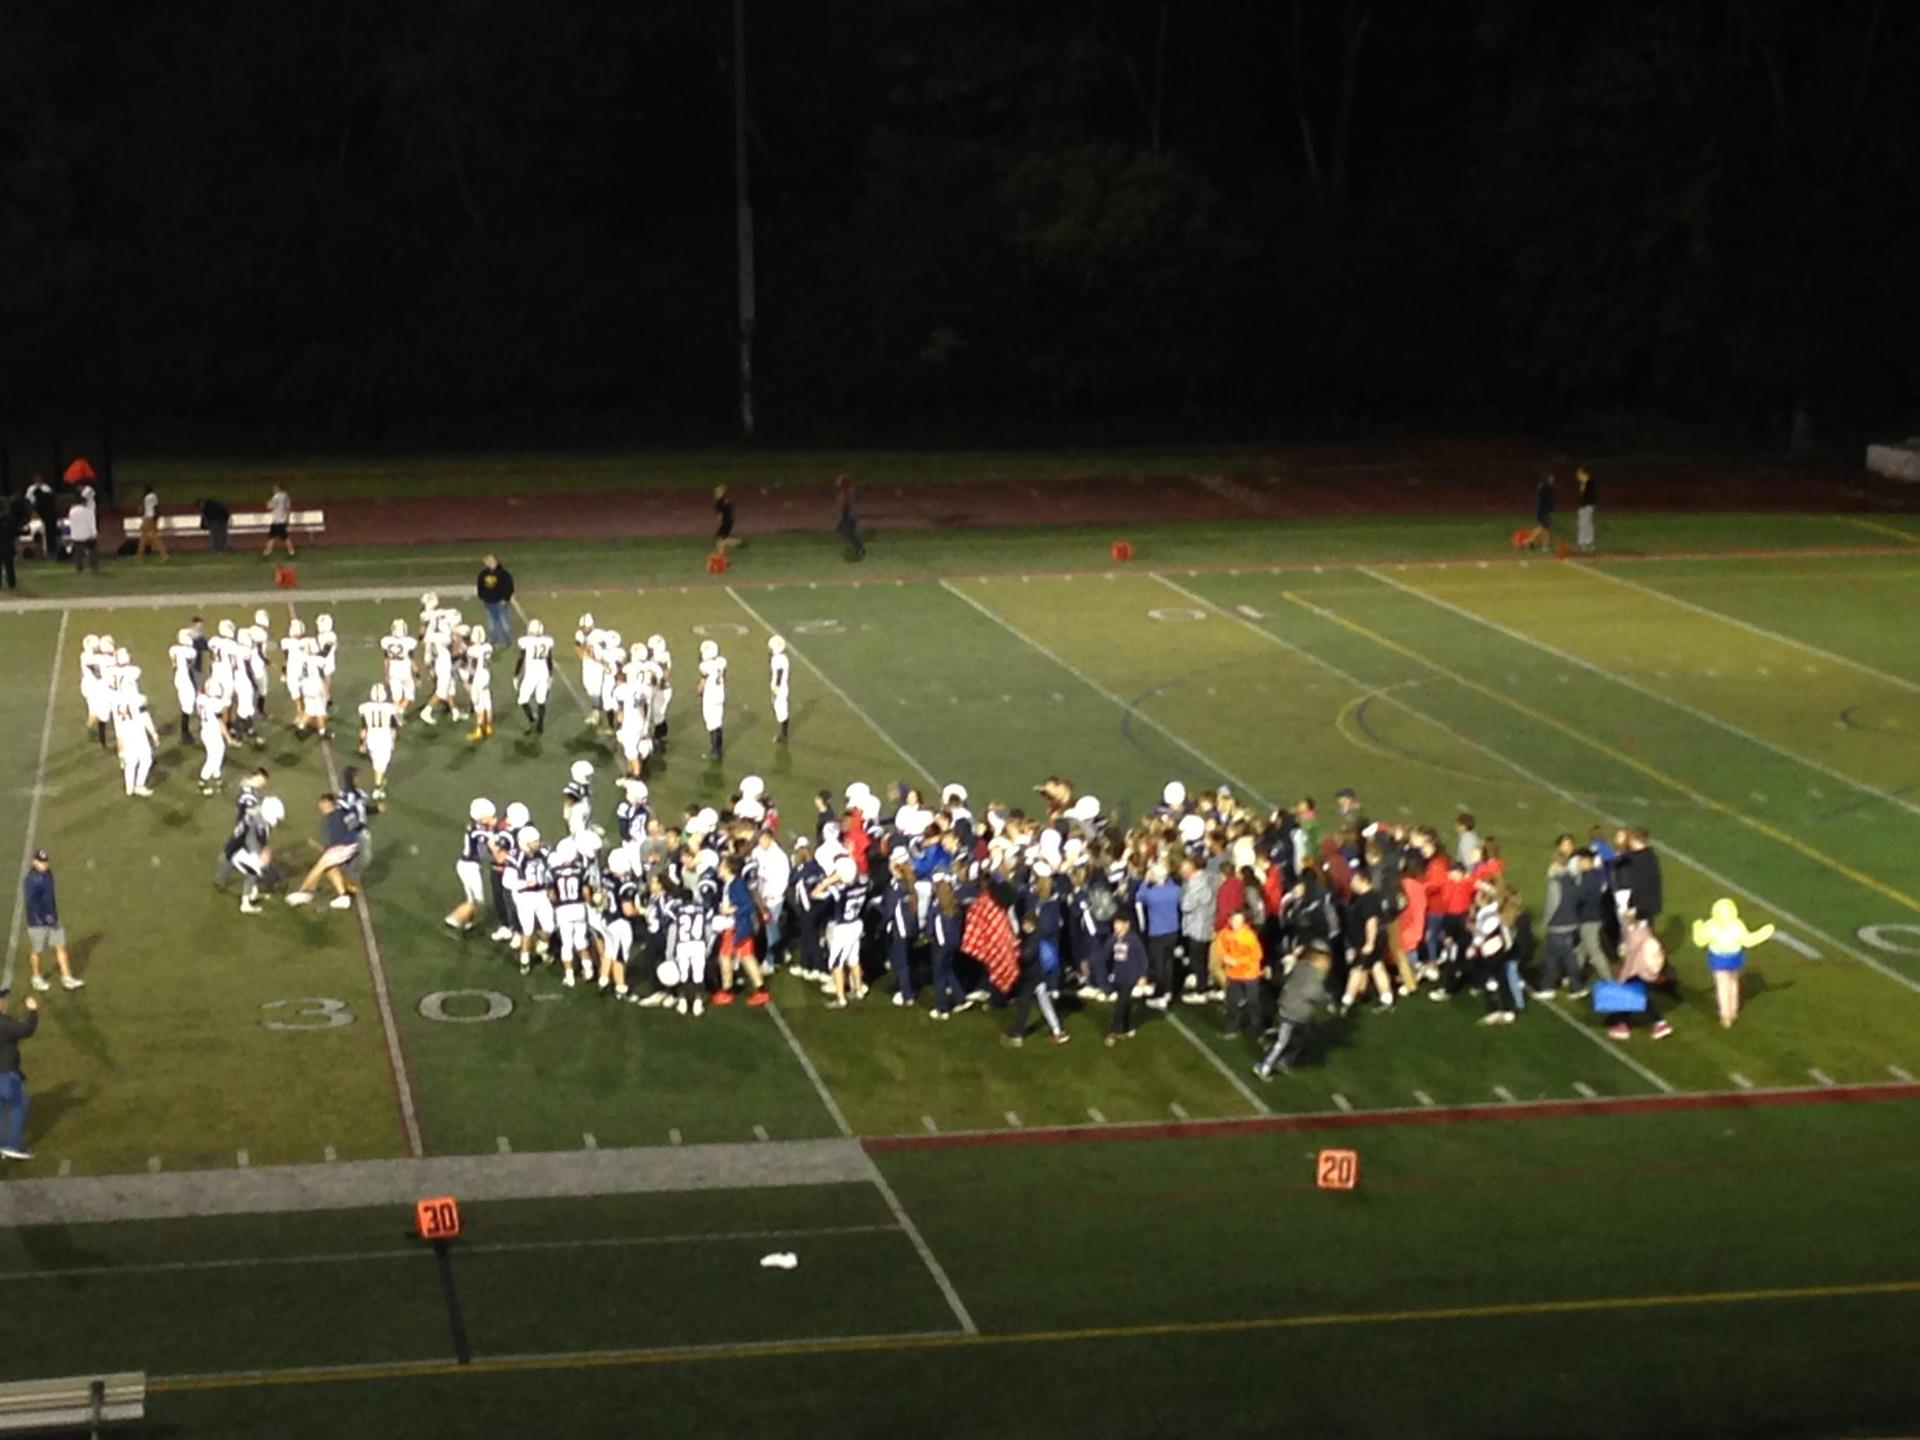 Fans and players celebrate on the field